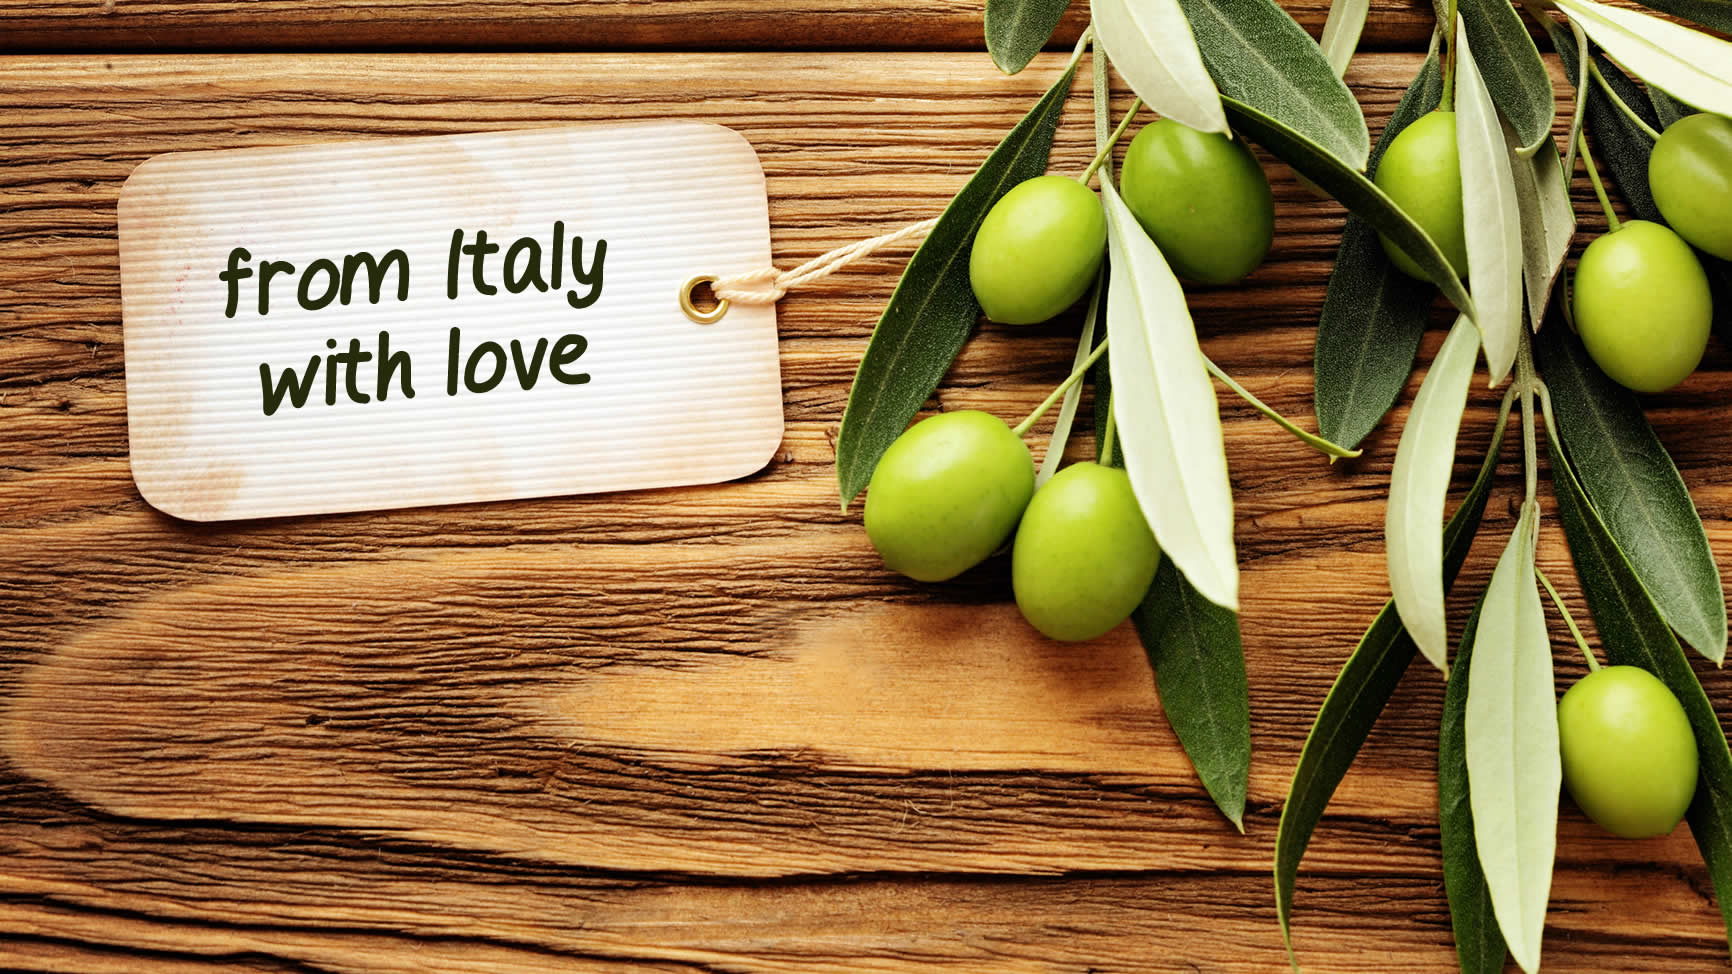 Olive Oil From Italy With